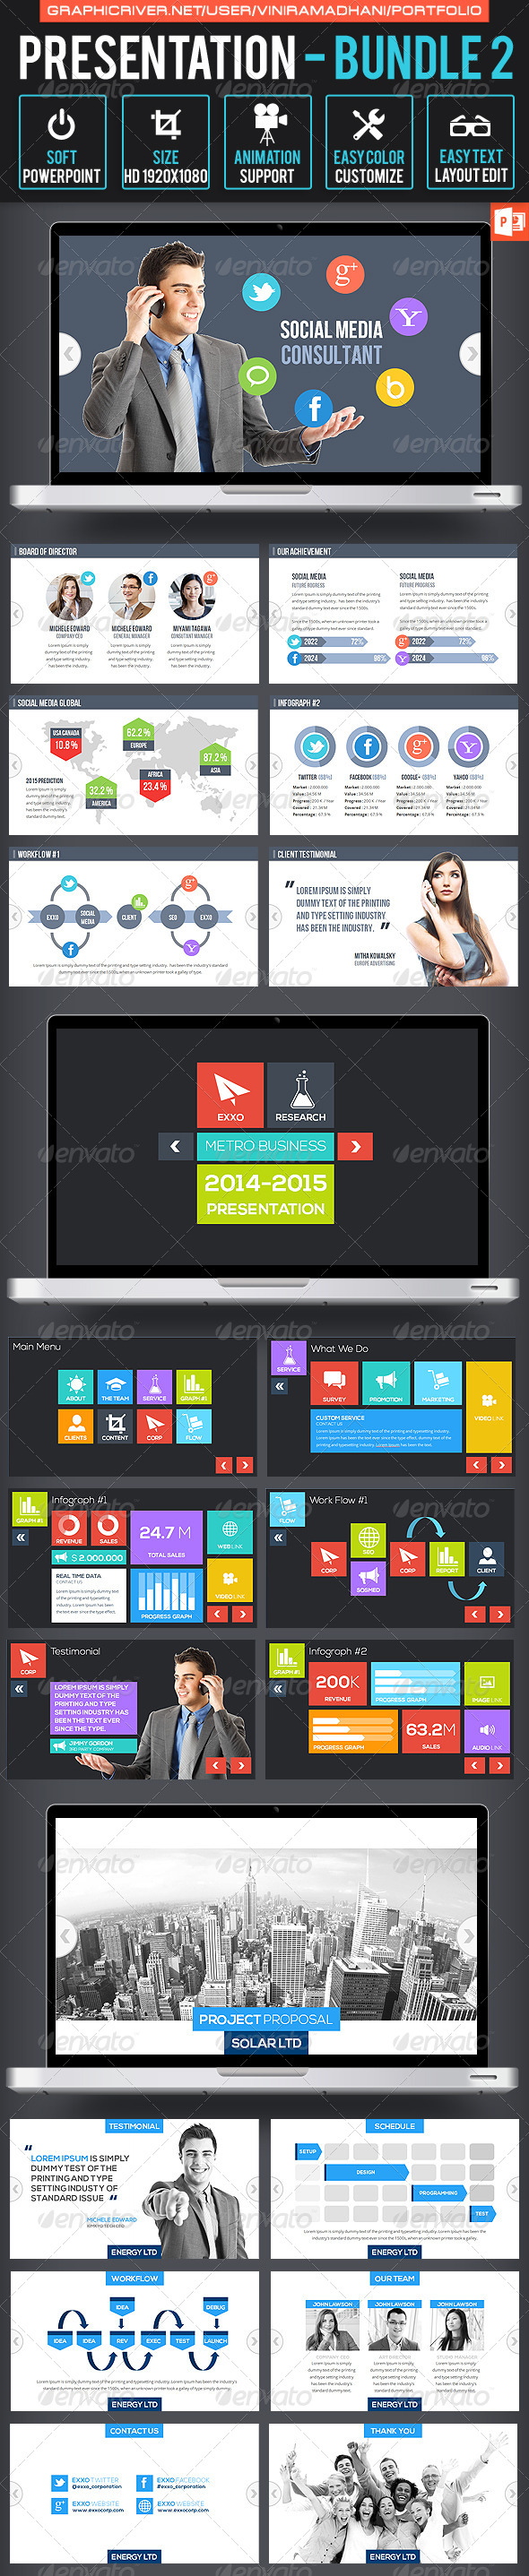 GraphicRiver Presentation Bundle 2 7022109